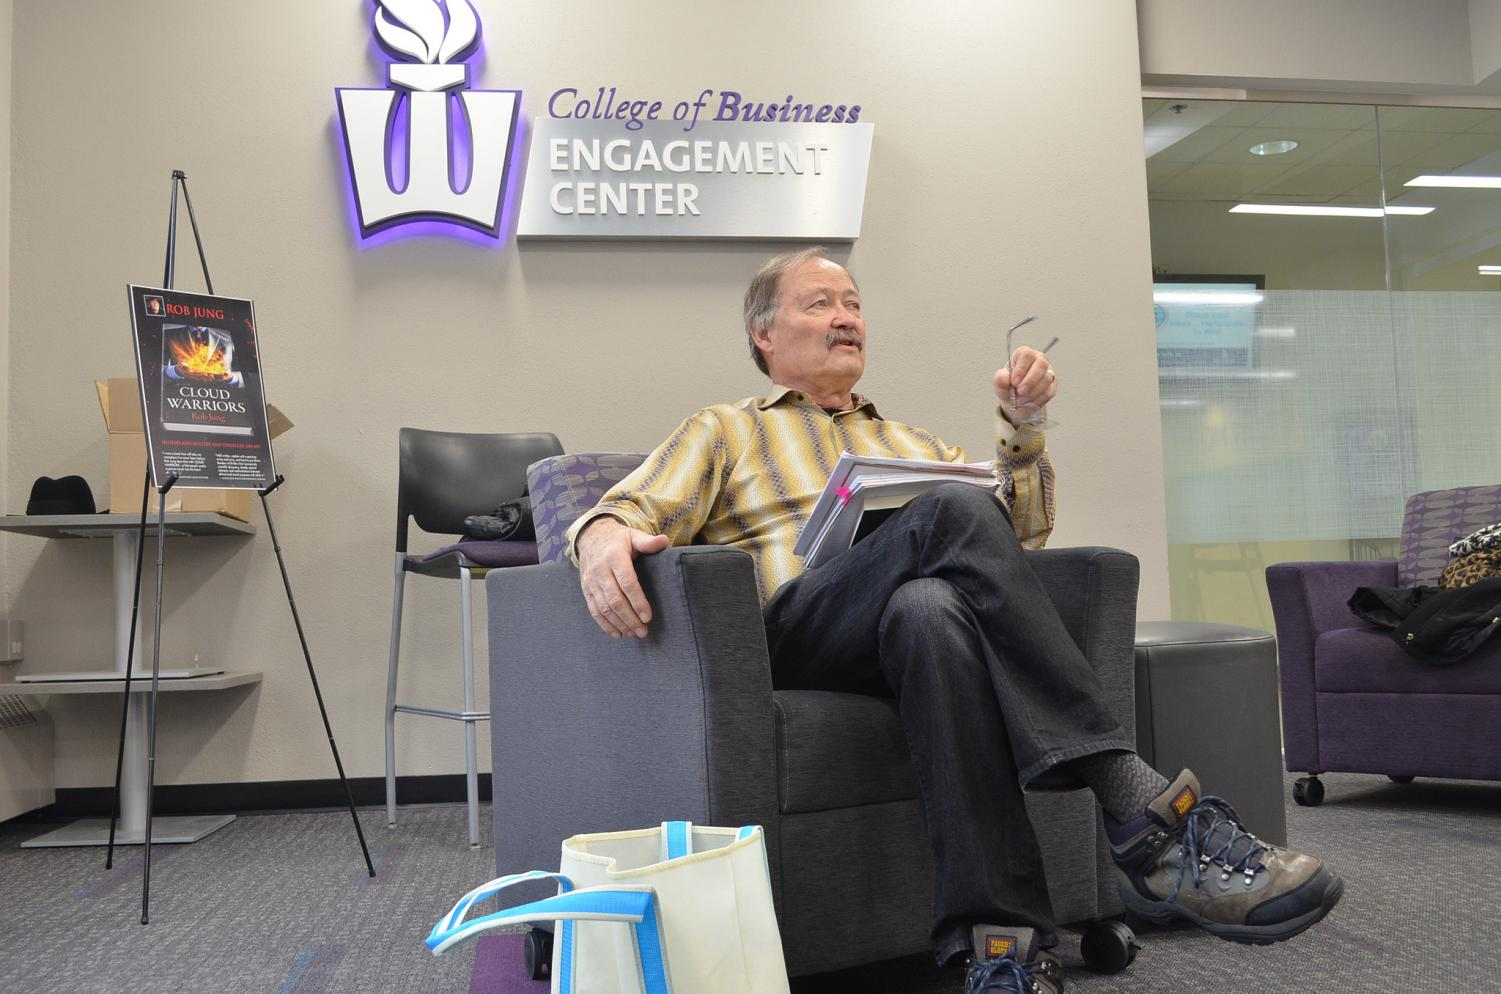 "Winona State University alum and first-time author Robert Junghans visited Winona State on Saturday, Feb. 23 to promote the release of his first book. ""Cloud Warriors"" is a historical fiction set in two different time periods and asks the moral question is living longer worth the price? Junghans spoke in the Somsen Engagement Center to discuss his path to publication and inspirations as a writer."